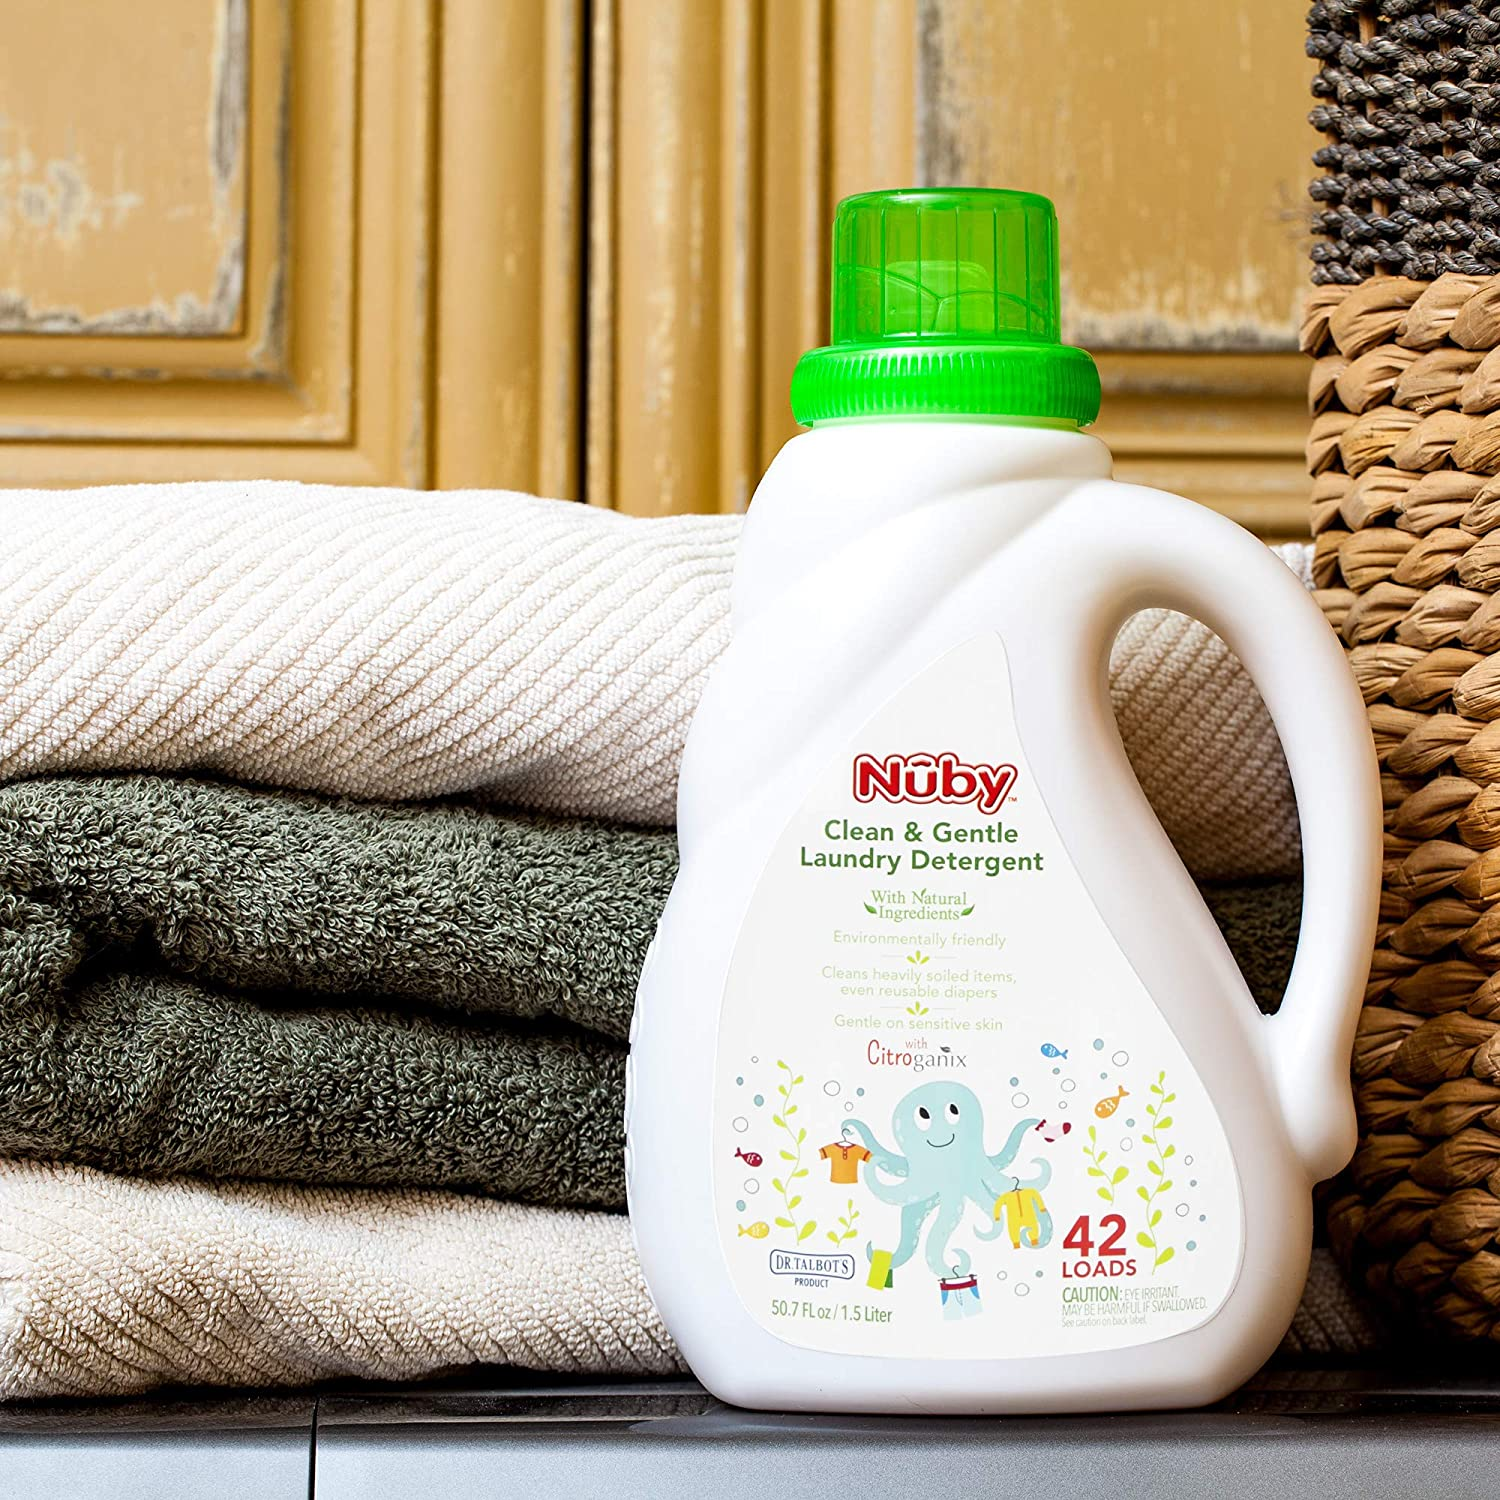 Nuby Laundry Detergent Naturally Inspired with by Dr. Citroganix Sales Albuquerque Mall for sale